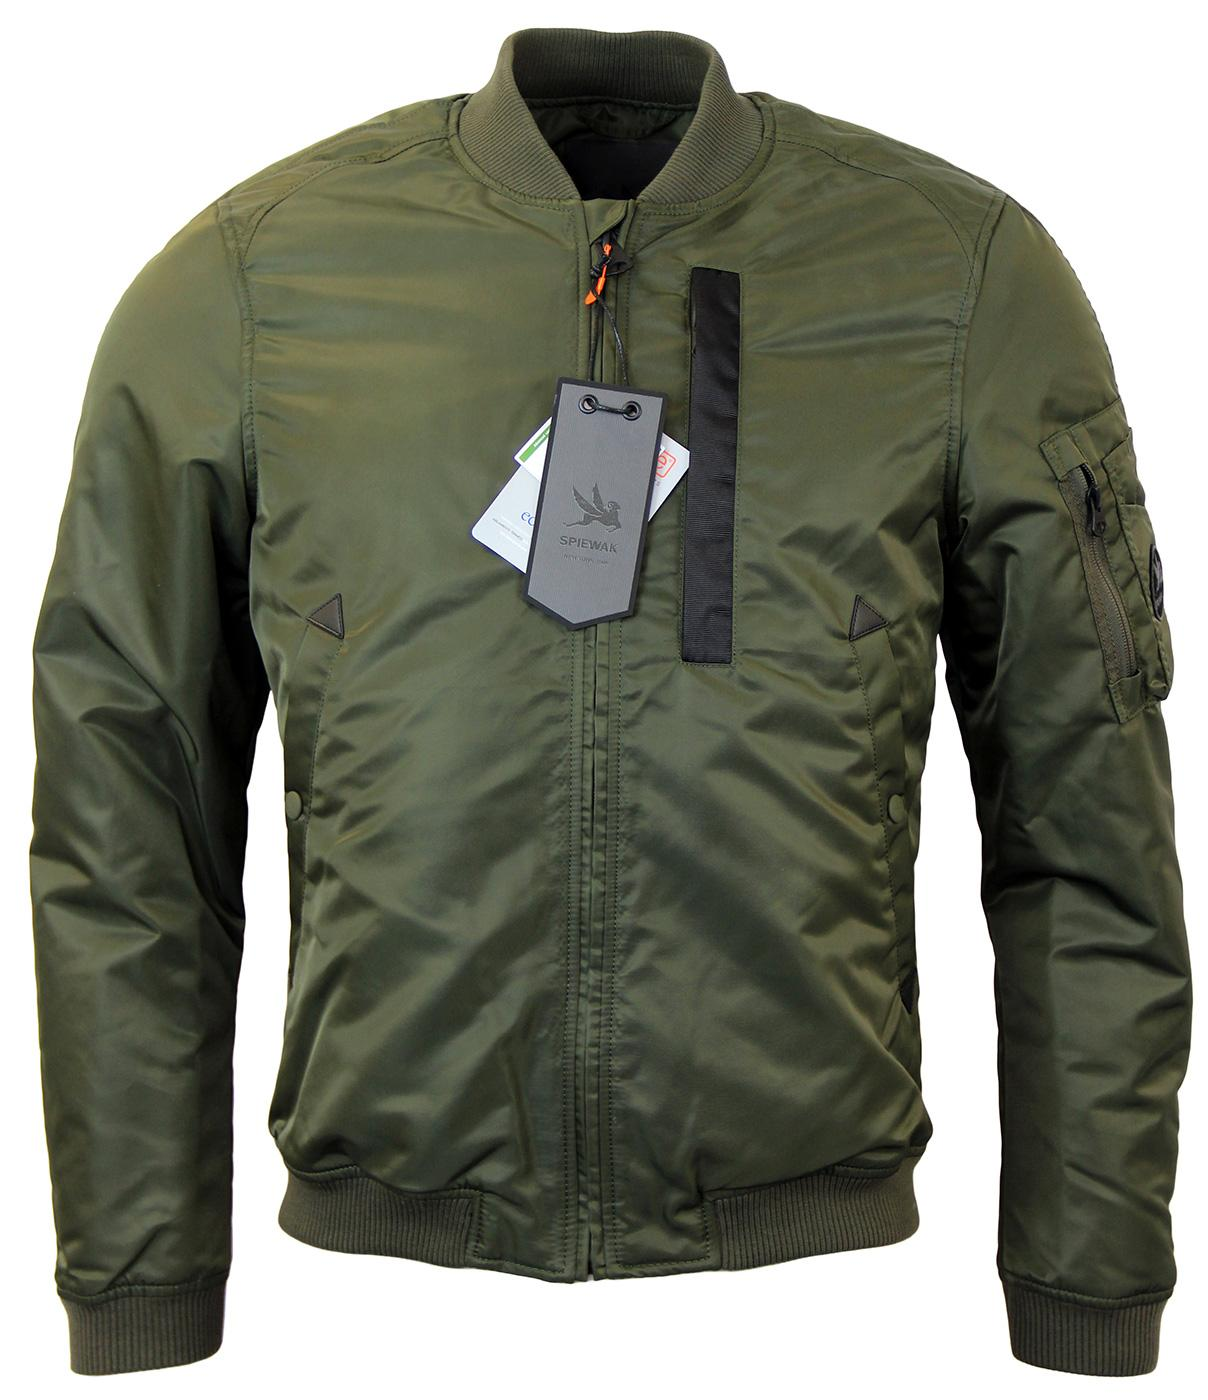 SPIEWAK Retro Mod MA-1 Bomber Flight Jacket OLIVE